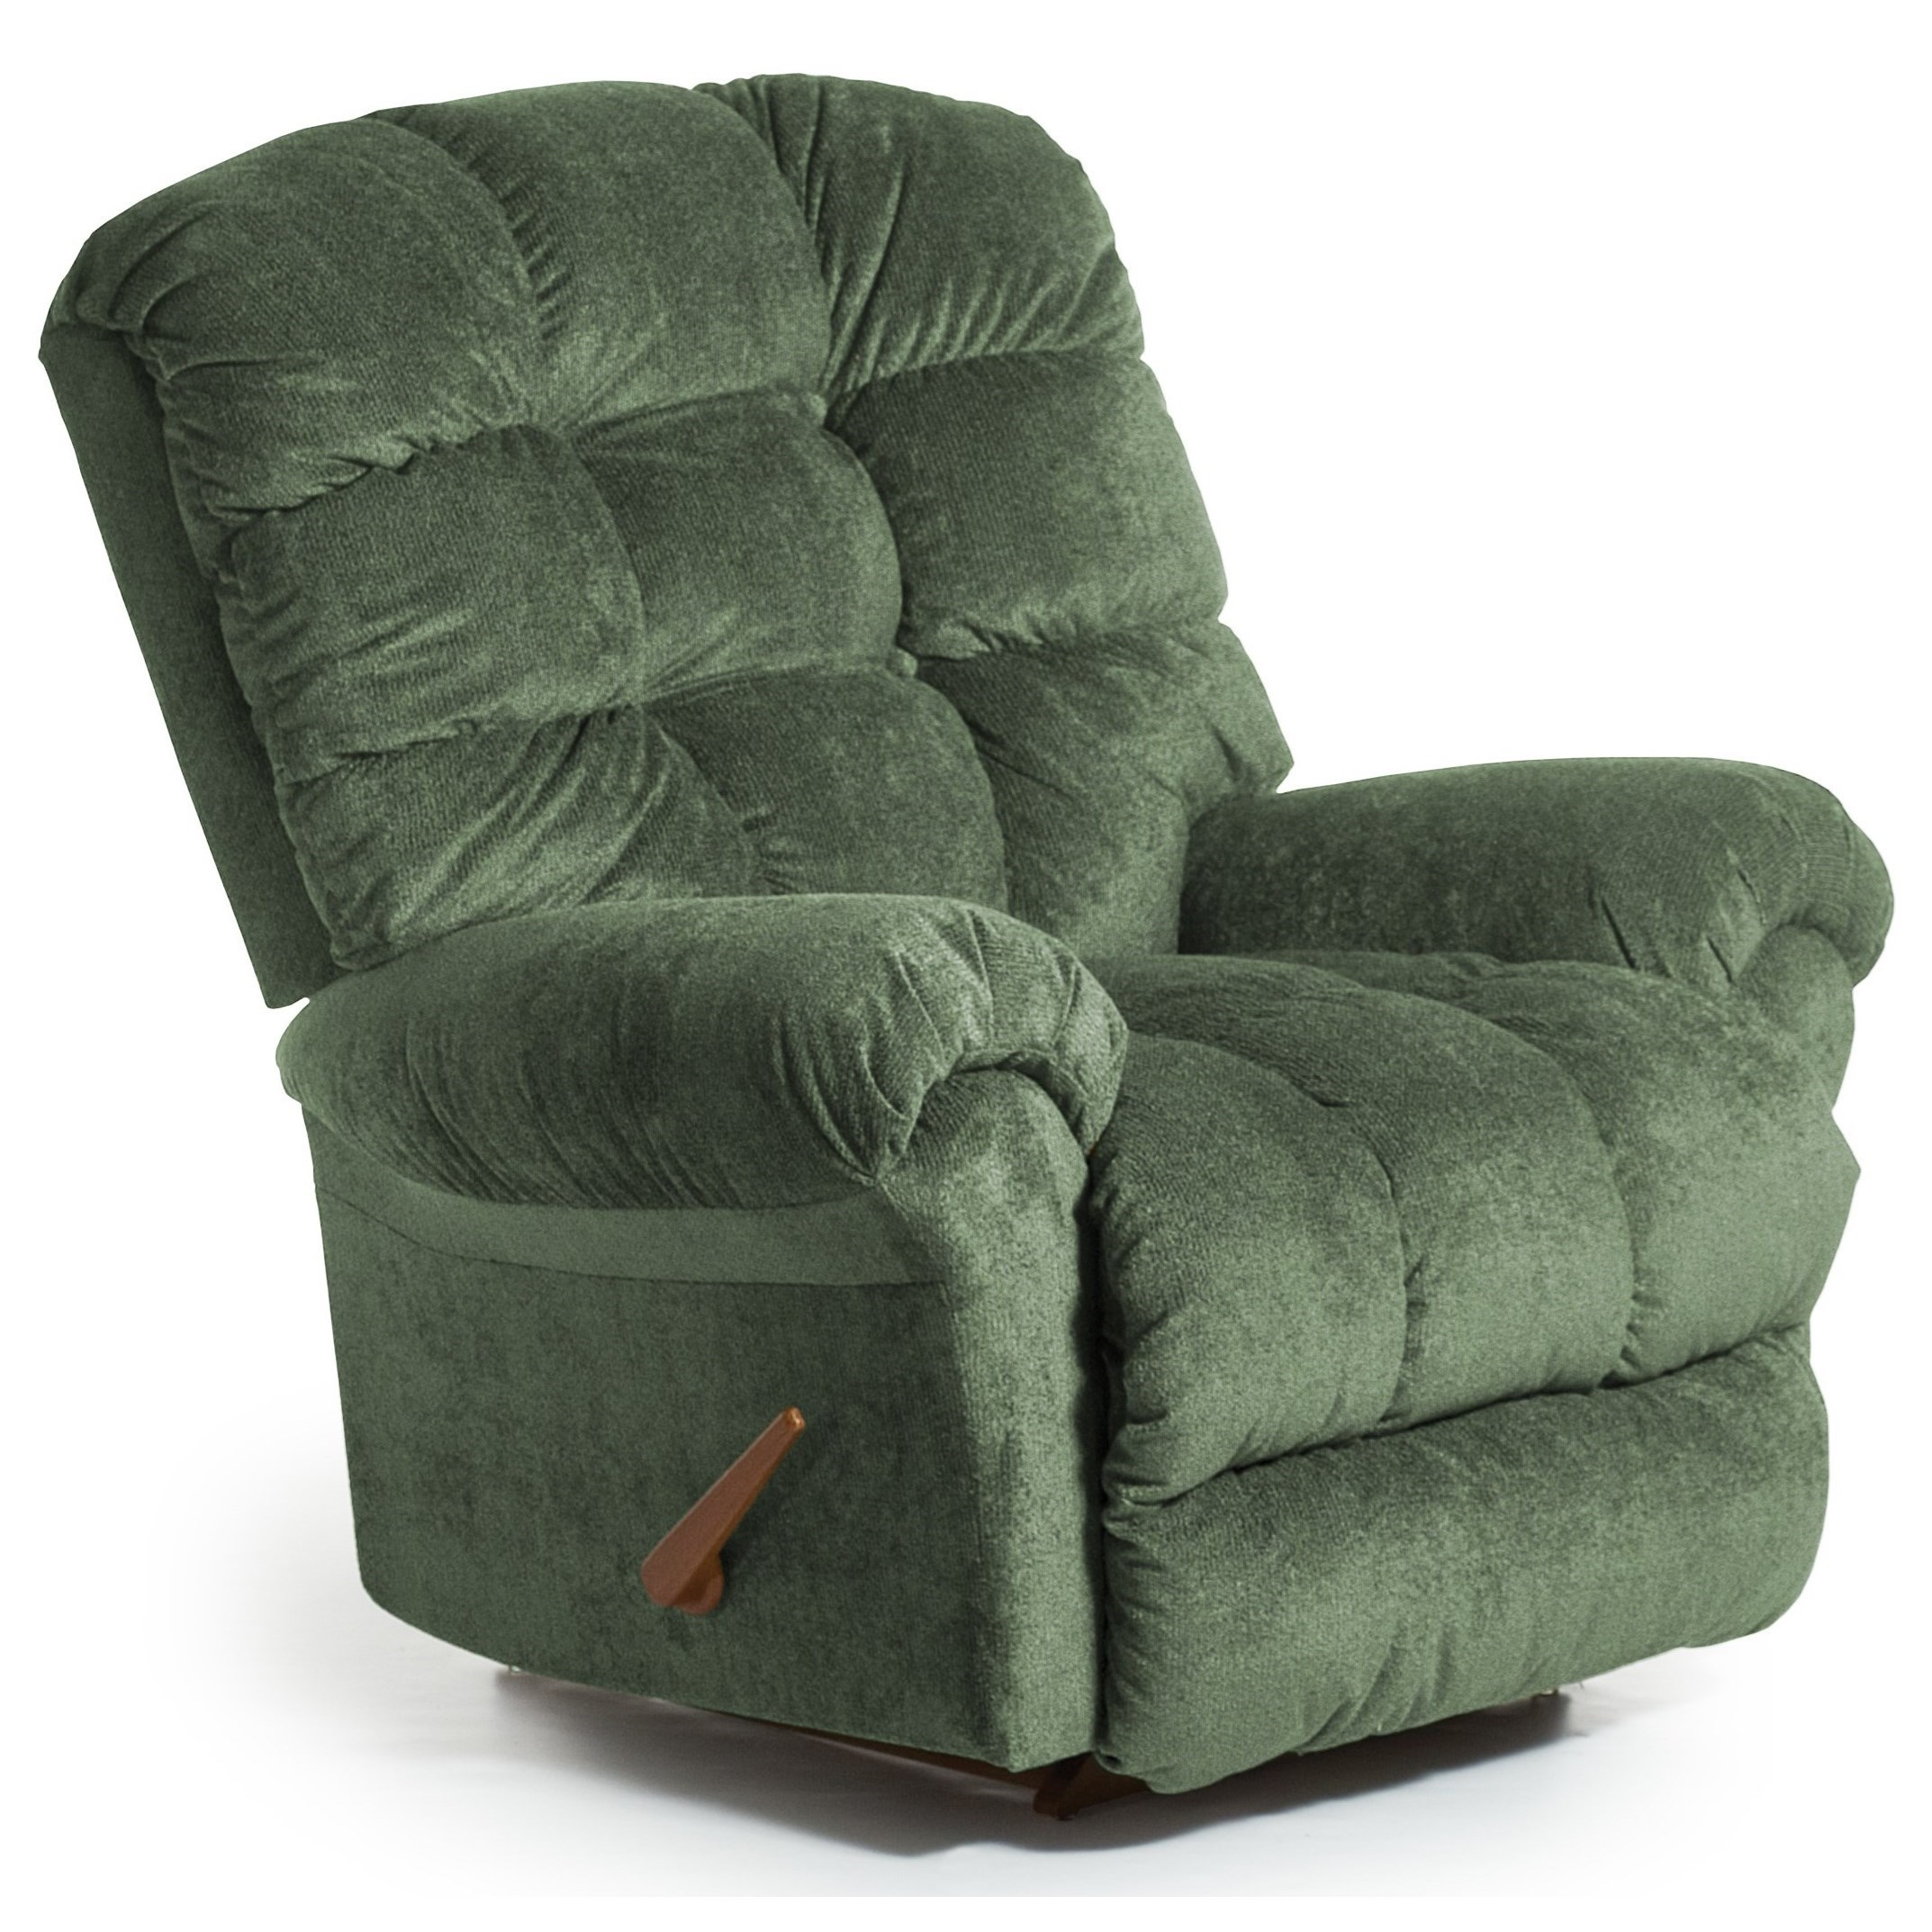 Recliners - BodyRest BodyRest Rocker Recliner by Best Home Furnishings at Wilson's Furniture